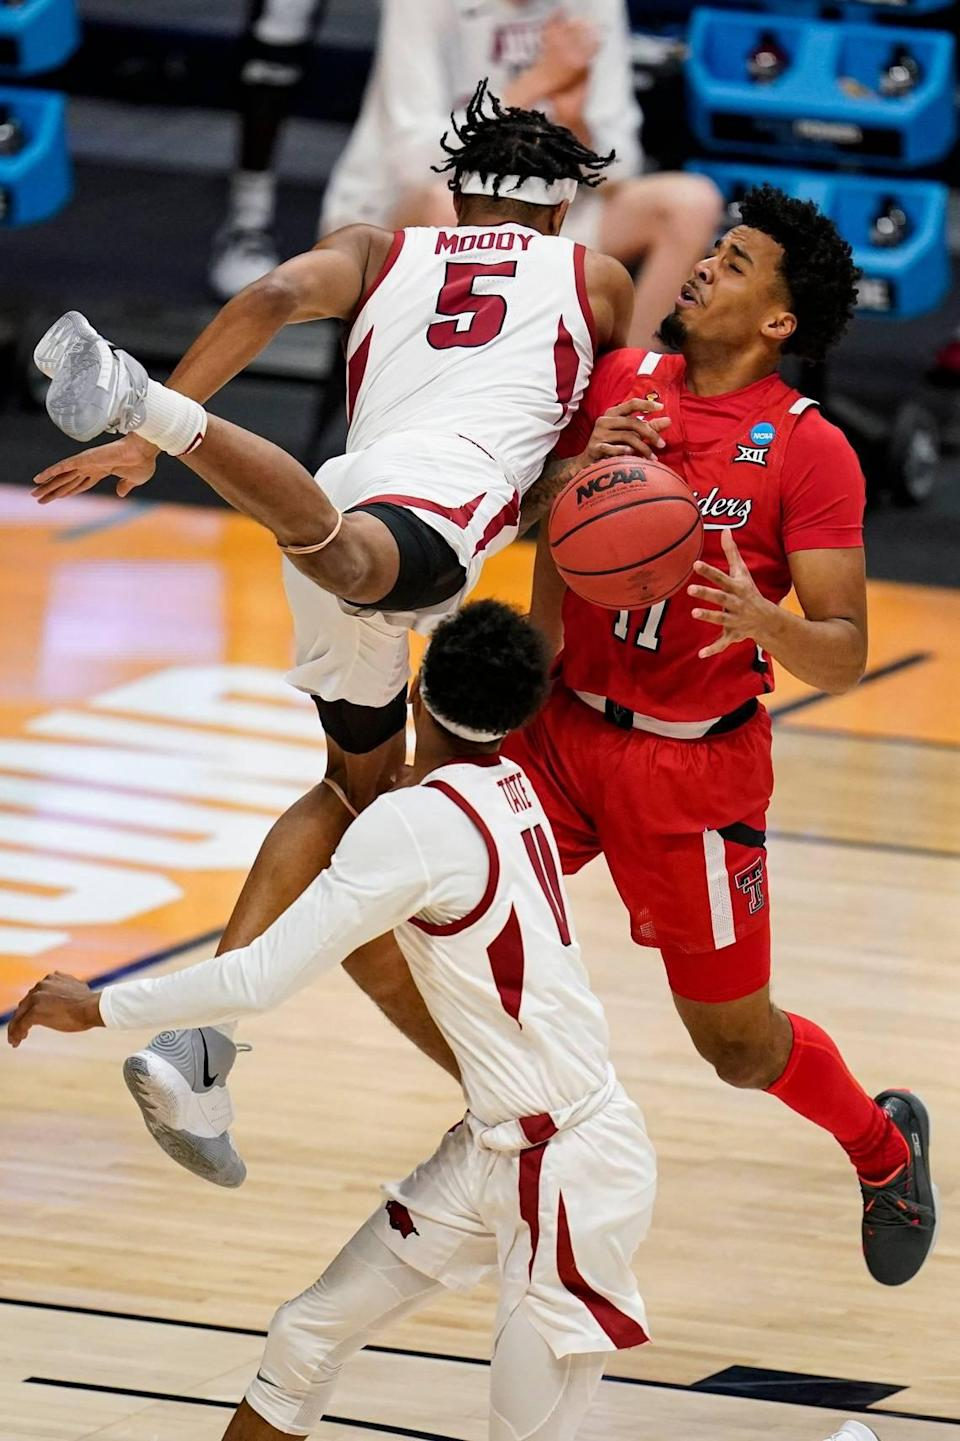 Arkansas guard Moses Moody (5) and Texas Tech guard Micah Peavy (5) collide in the first half of a second-round game in the NCAA men's college basketball tournament at Hinkle Fieldhouse in Indianapolis, Sunday, March 21, 2021.